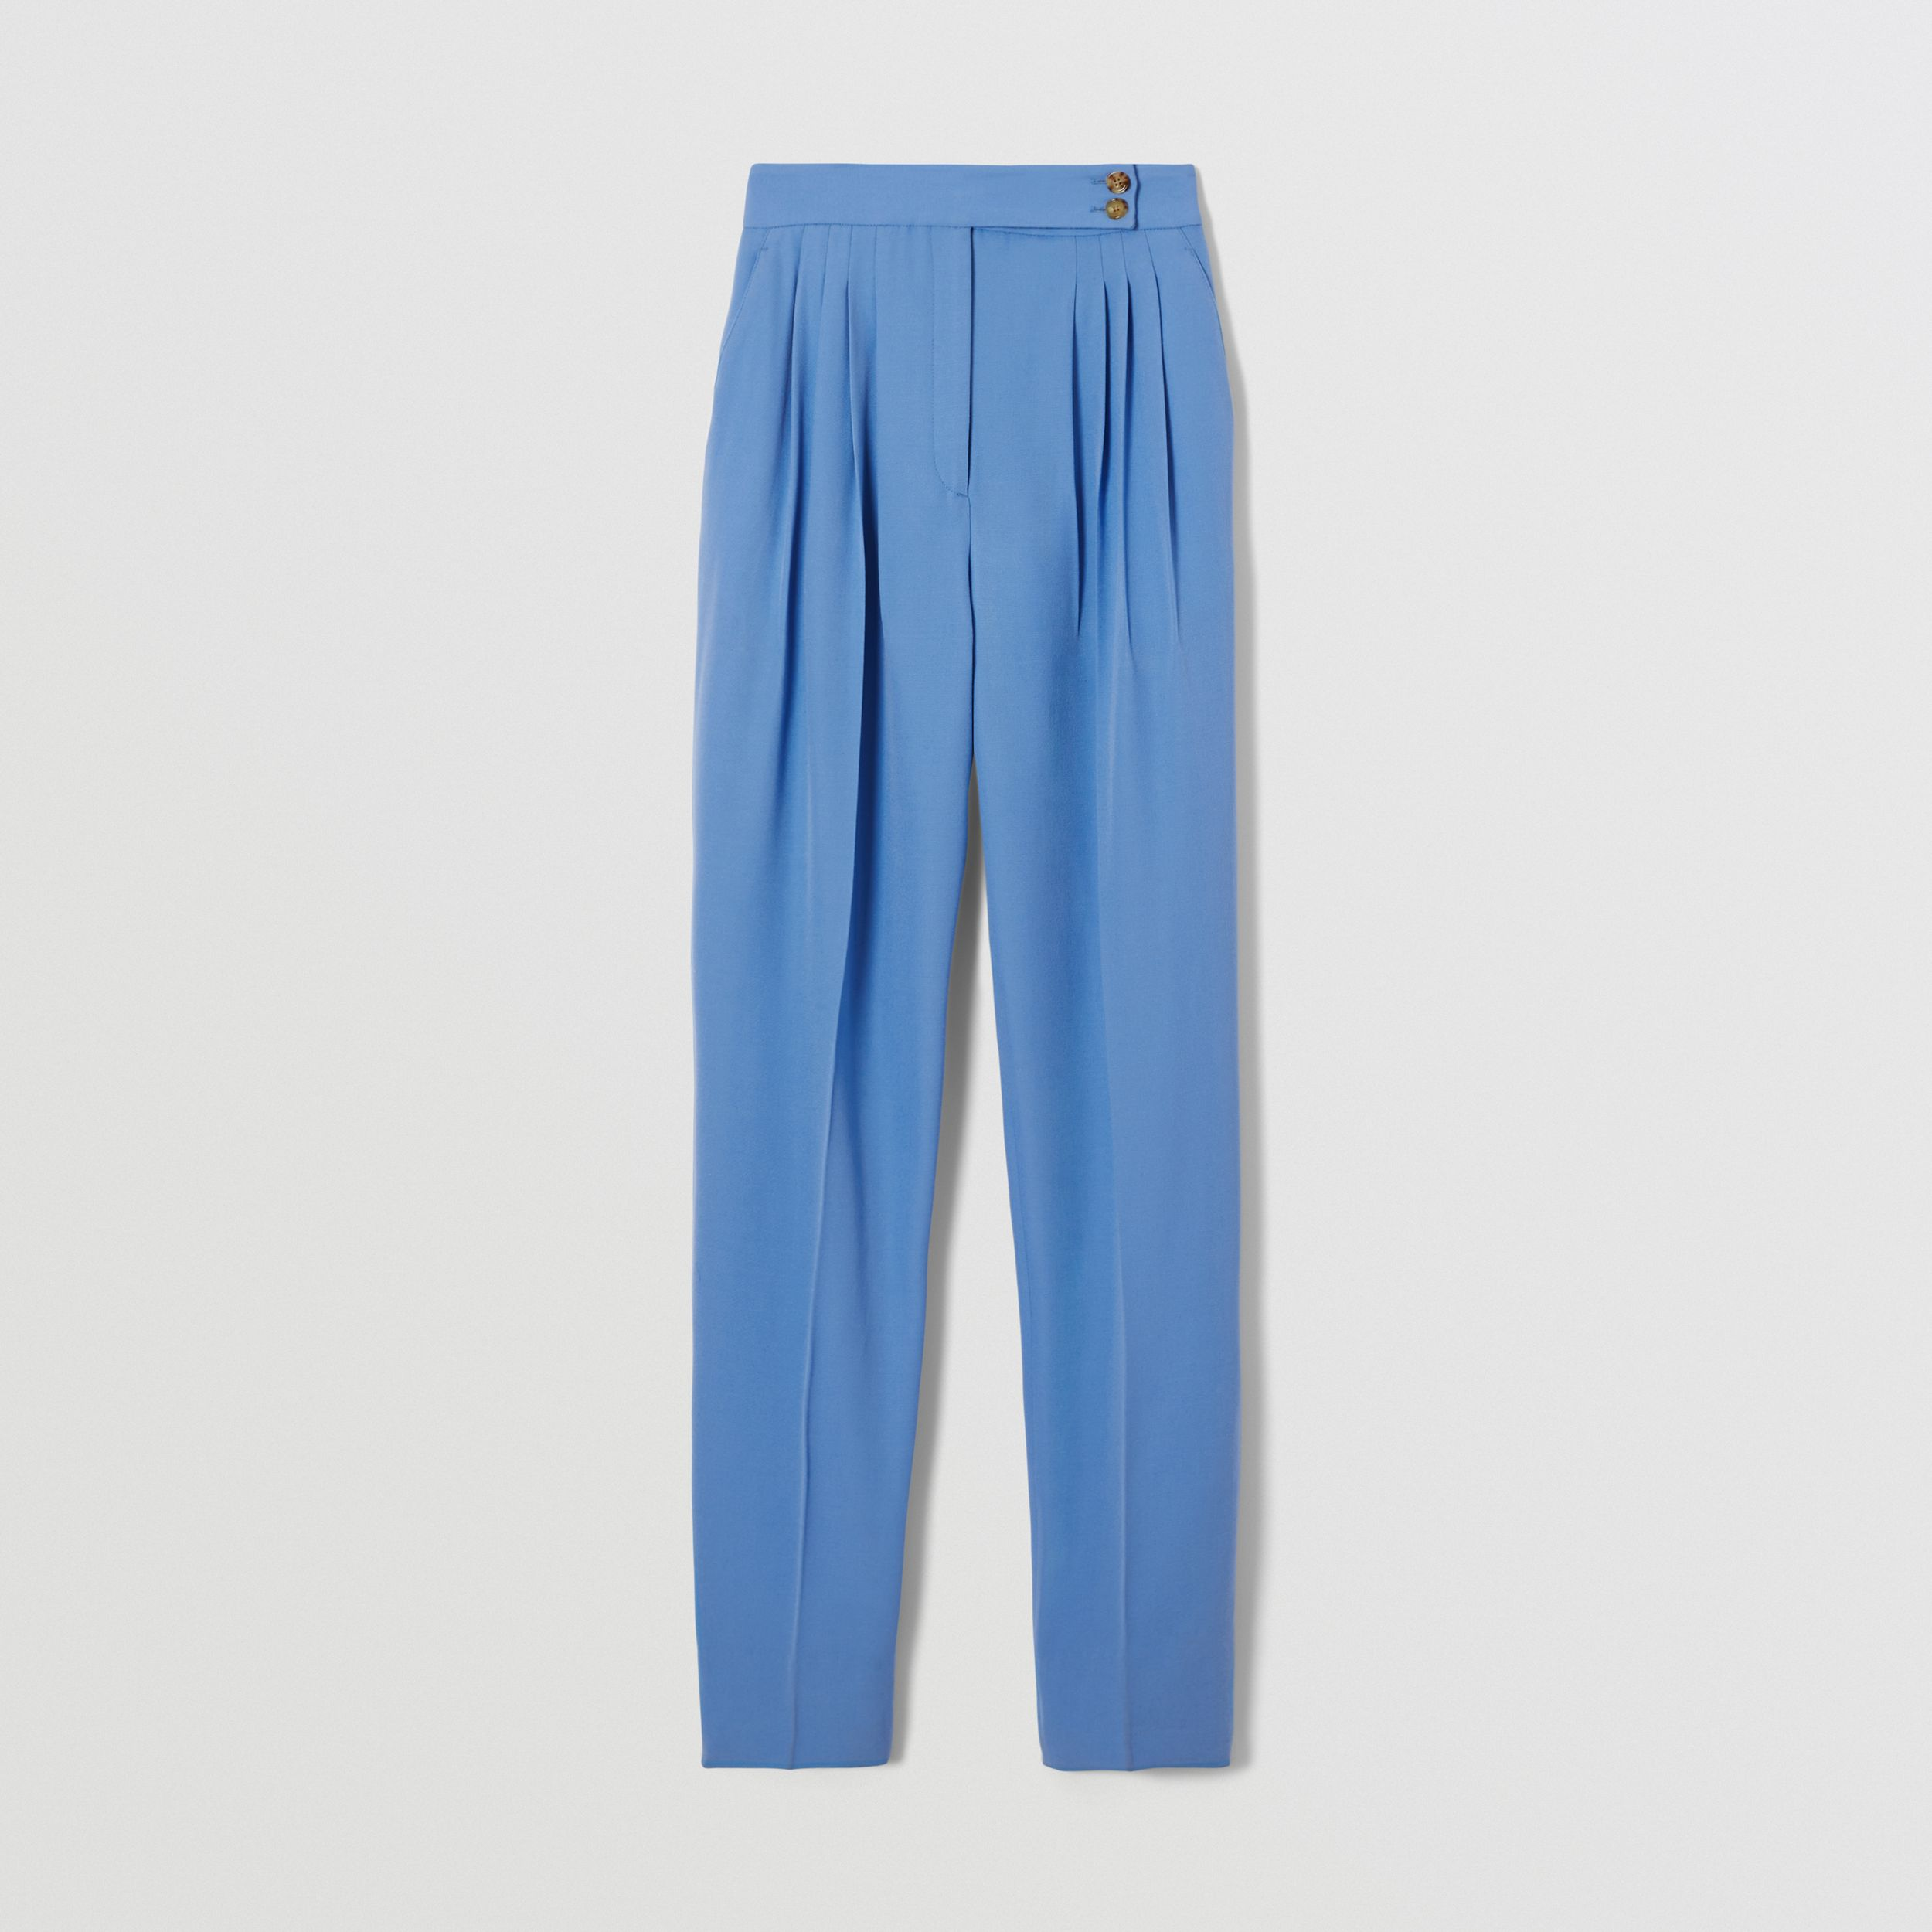 Mohair Wool Pleated Trousers in Cobalt - Women | Burberry United Kingdom - 4